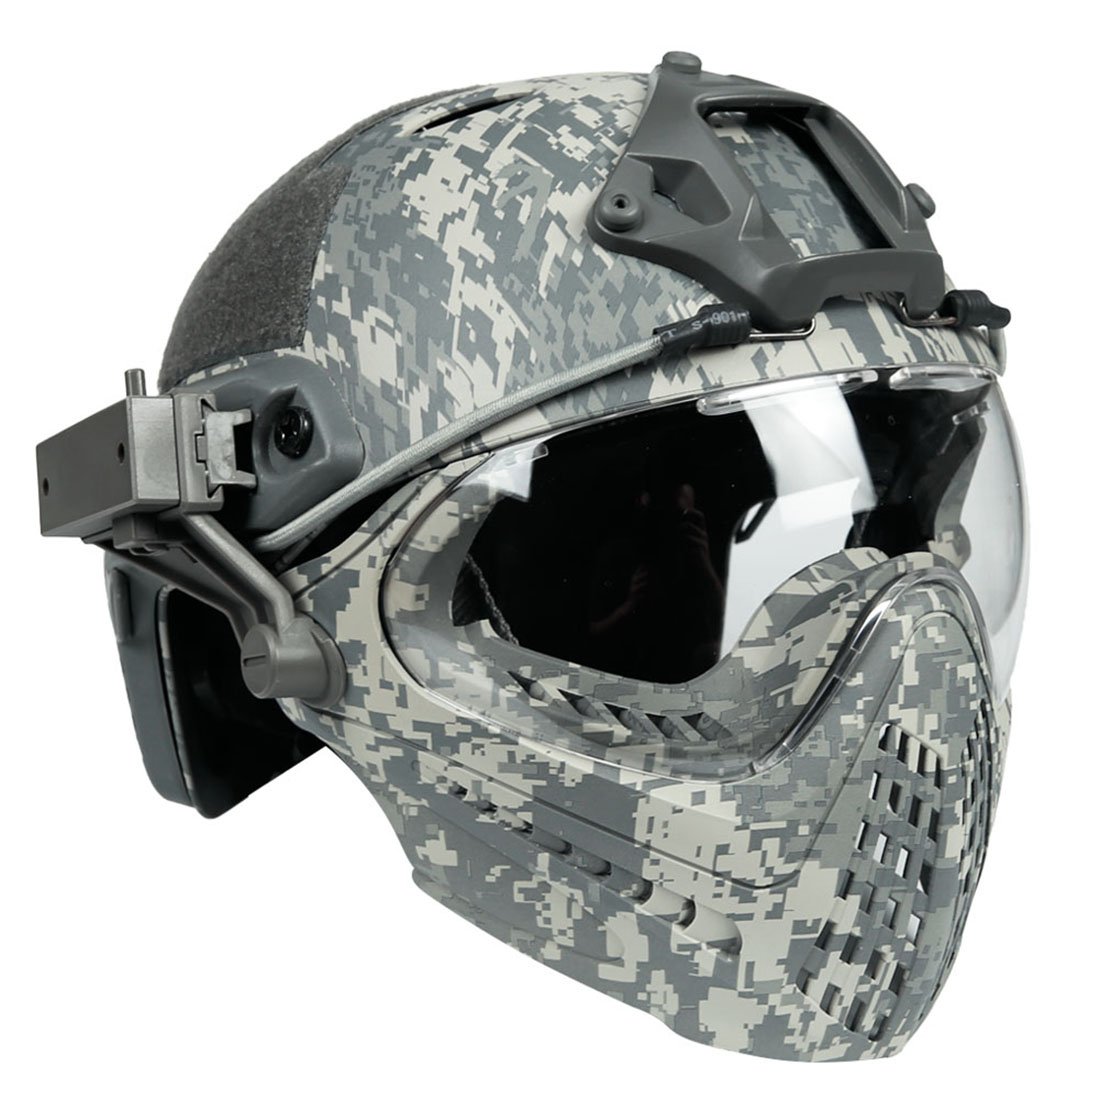 купить Surwish Military Mask Navigator Tactics Camouflage Protecting Helmet for Nerf Outdoors Activities - L по цене 6358.45 рублей